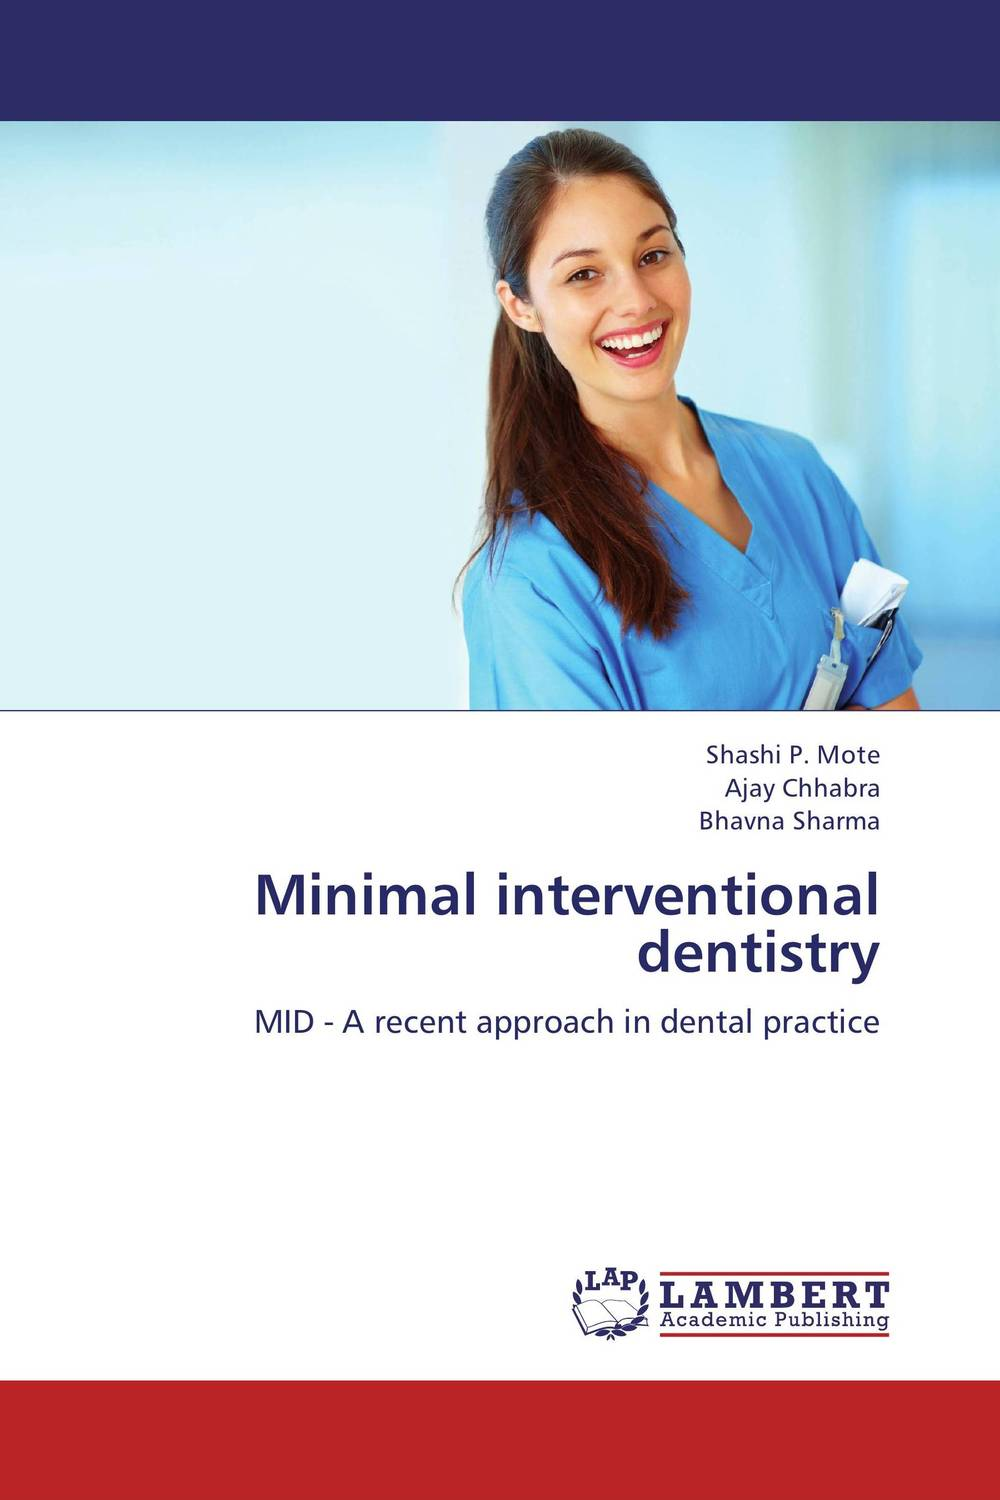 Minimal interventional dentistry shalu mahajan and anupam agarwal minimally invasive dentistry